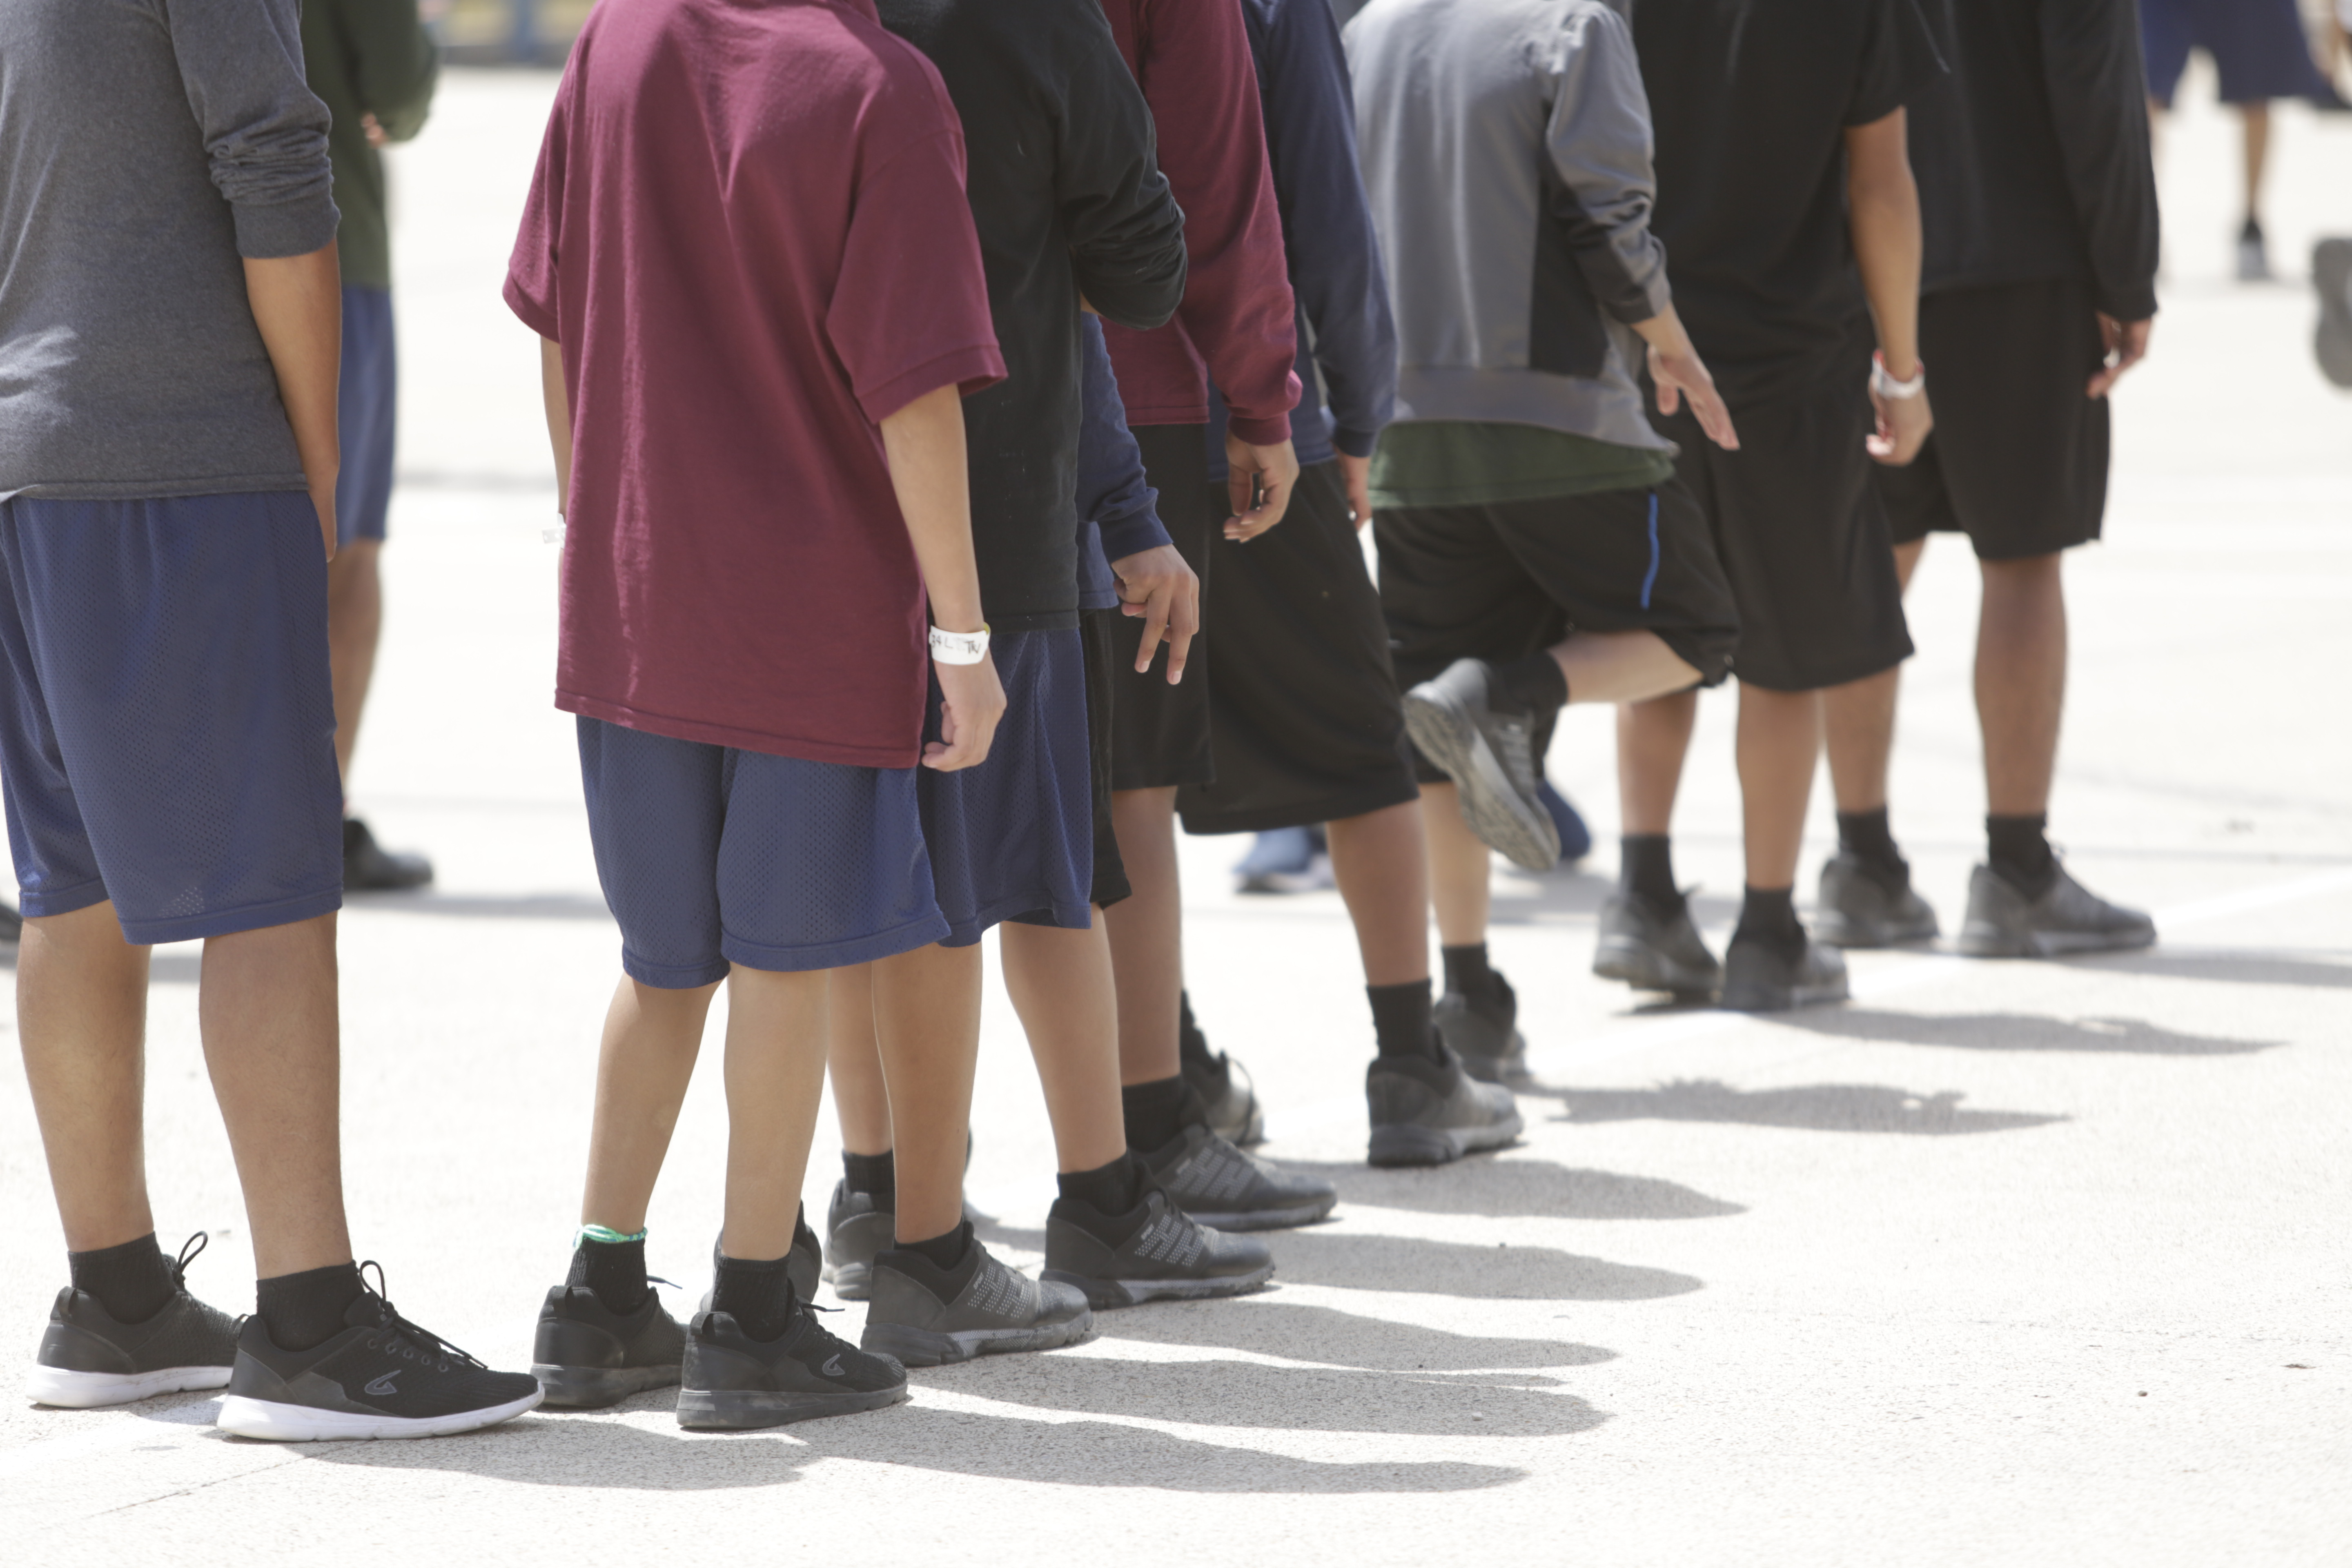 Boys in line at the Casa Padre facility for child immigrants in Texas.